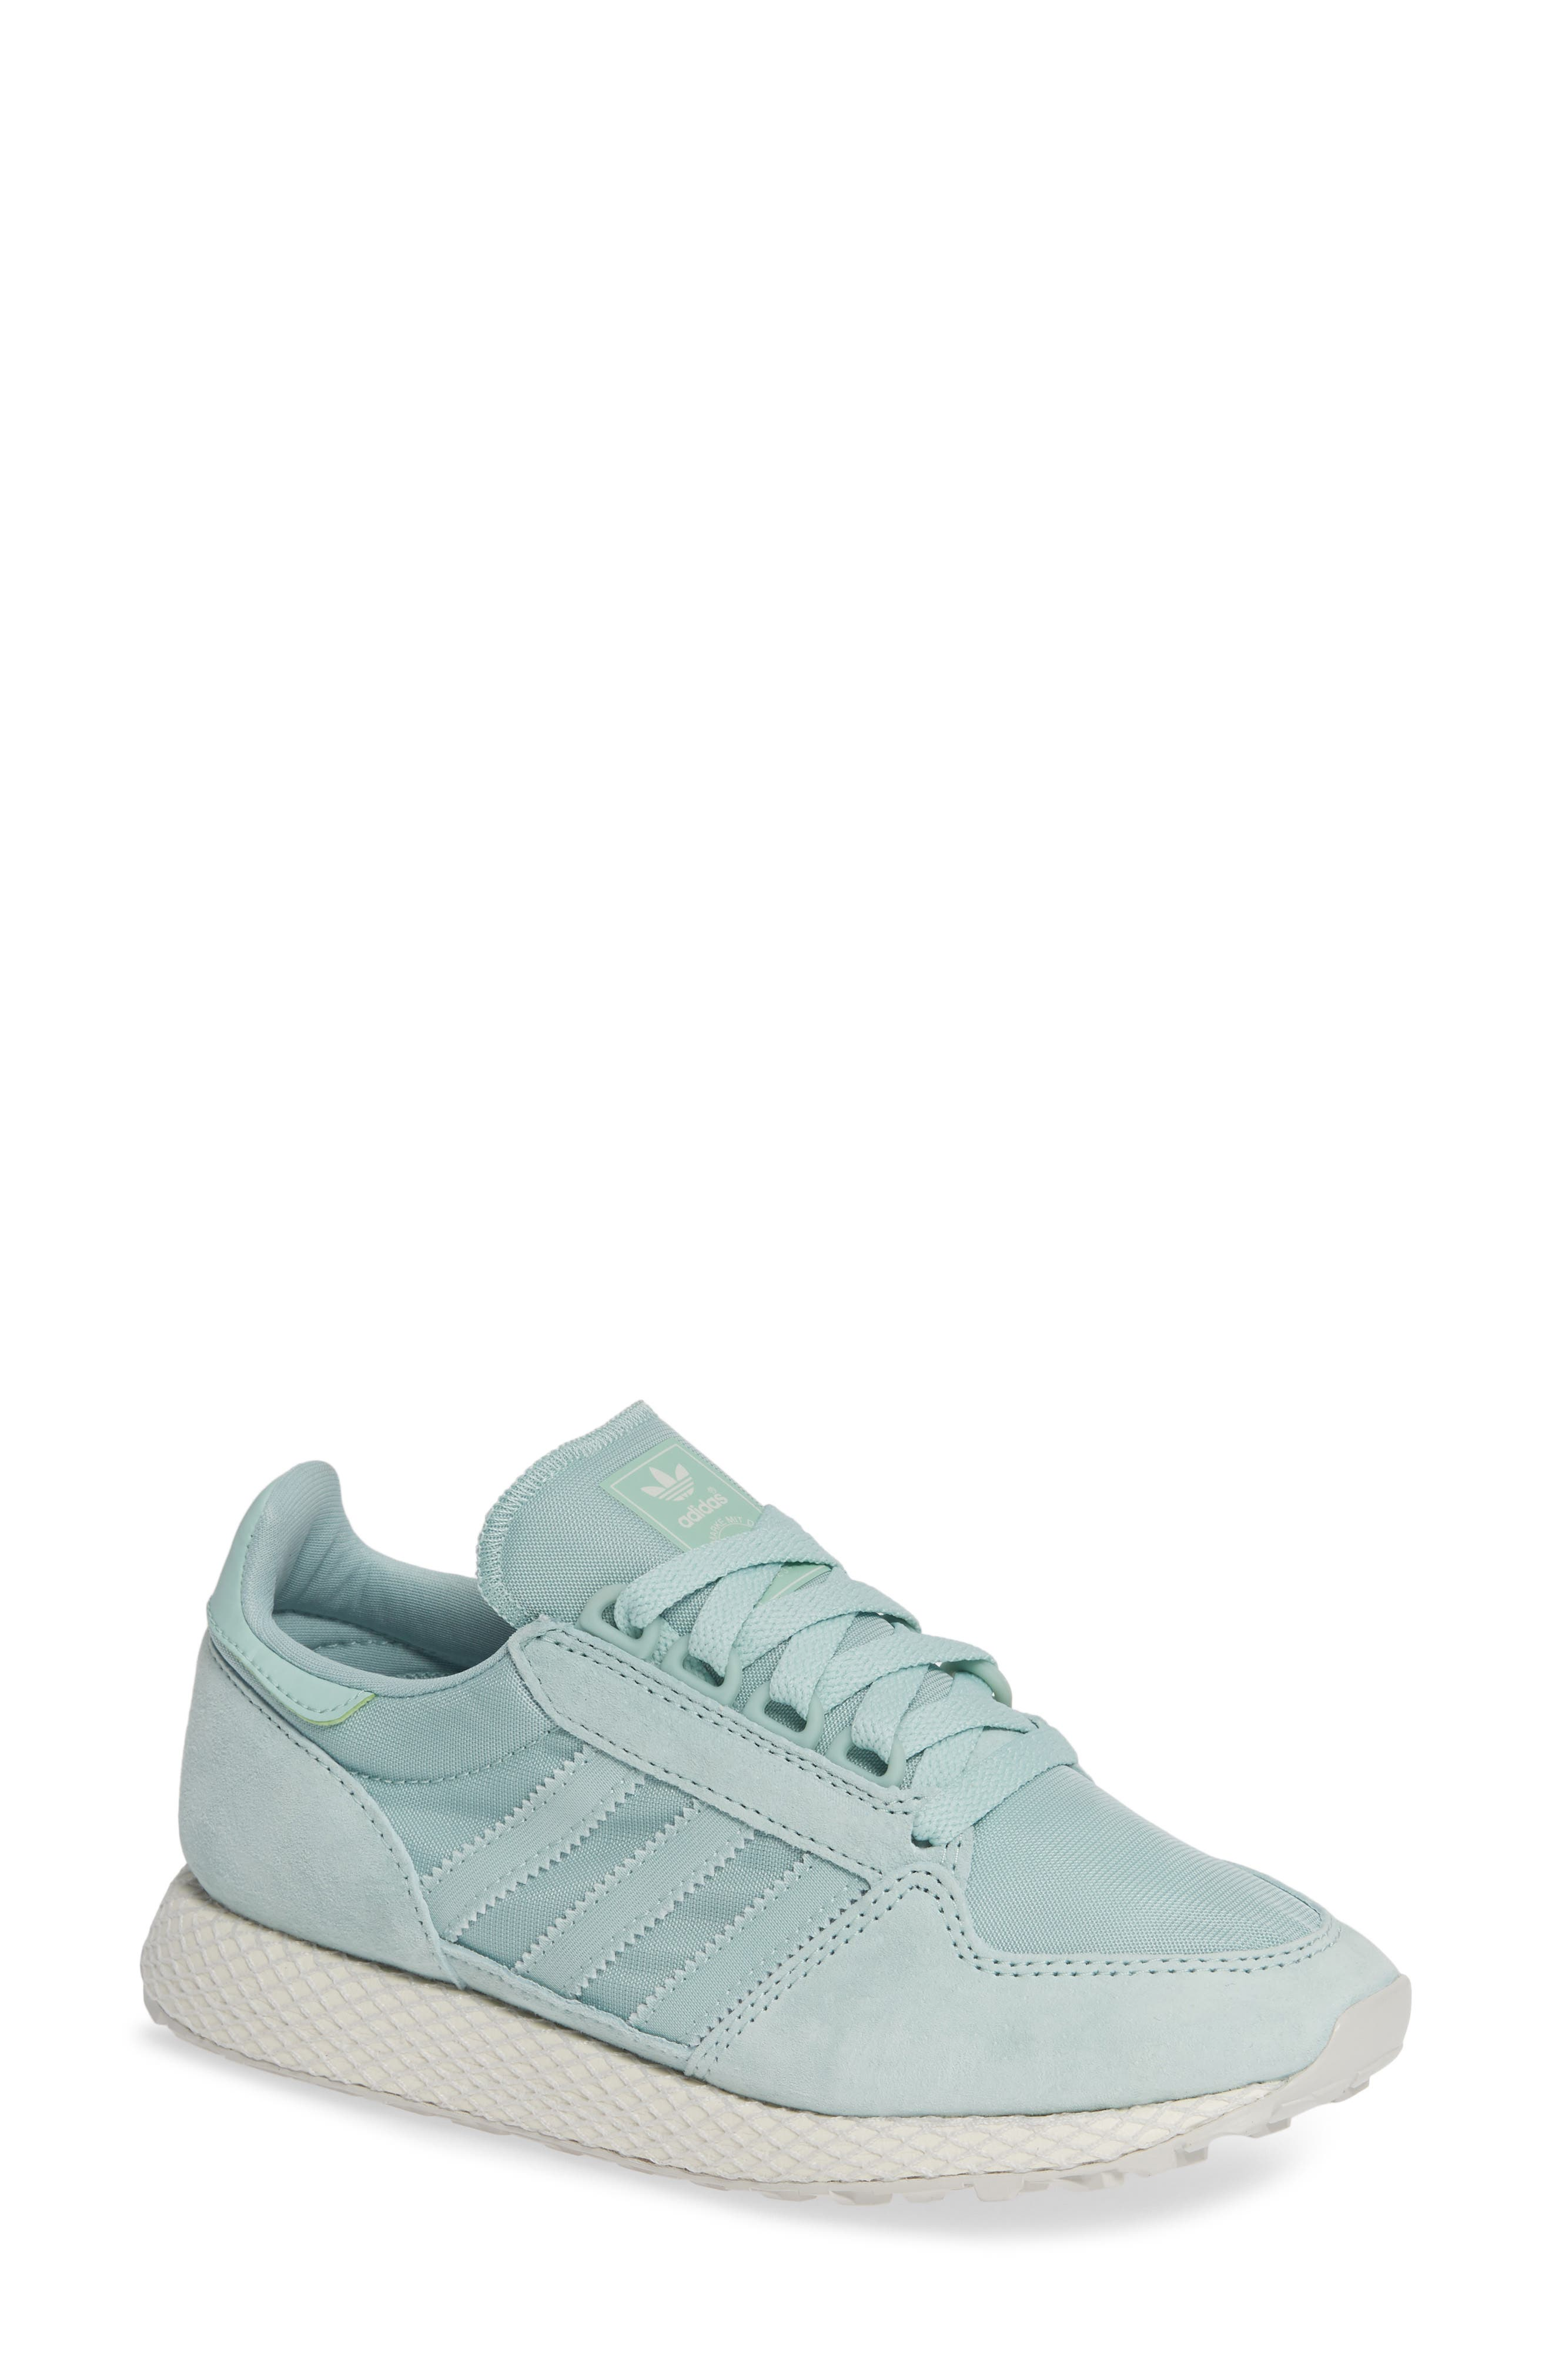 Adidas Forest Grove Sneakers - Green